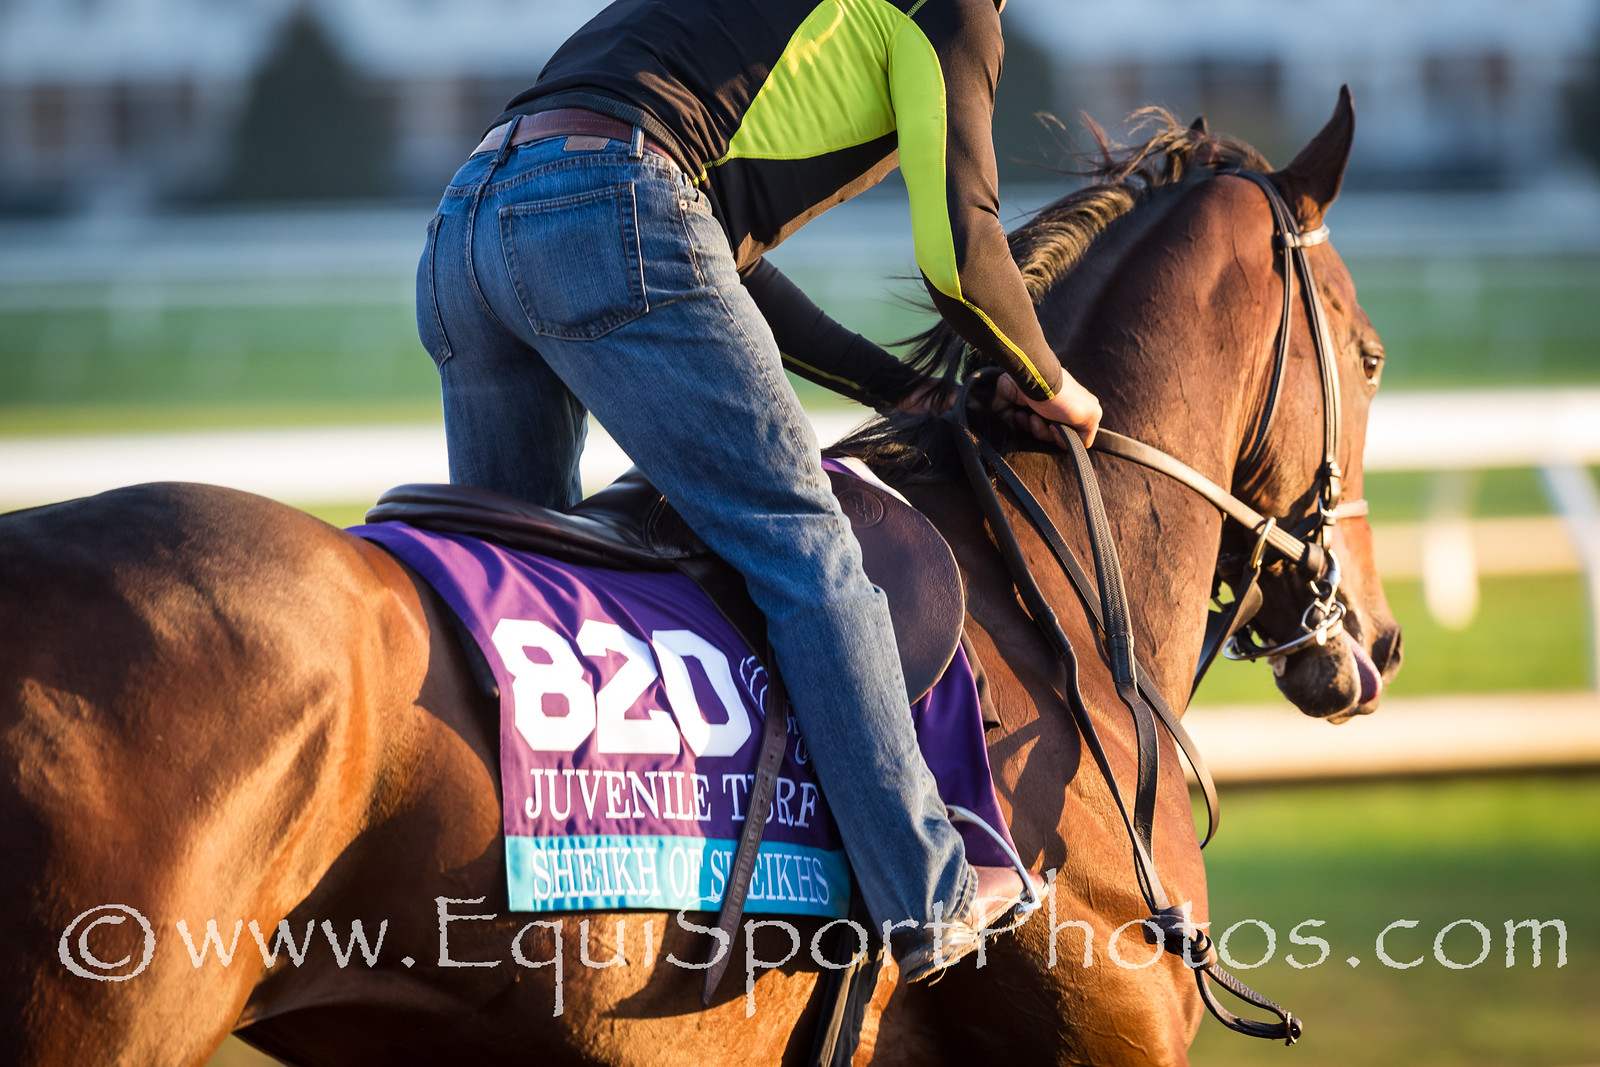 Sheikh of Sheikhs at Keeneland 10.23.15.